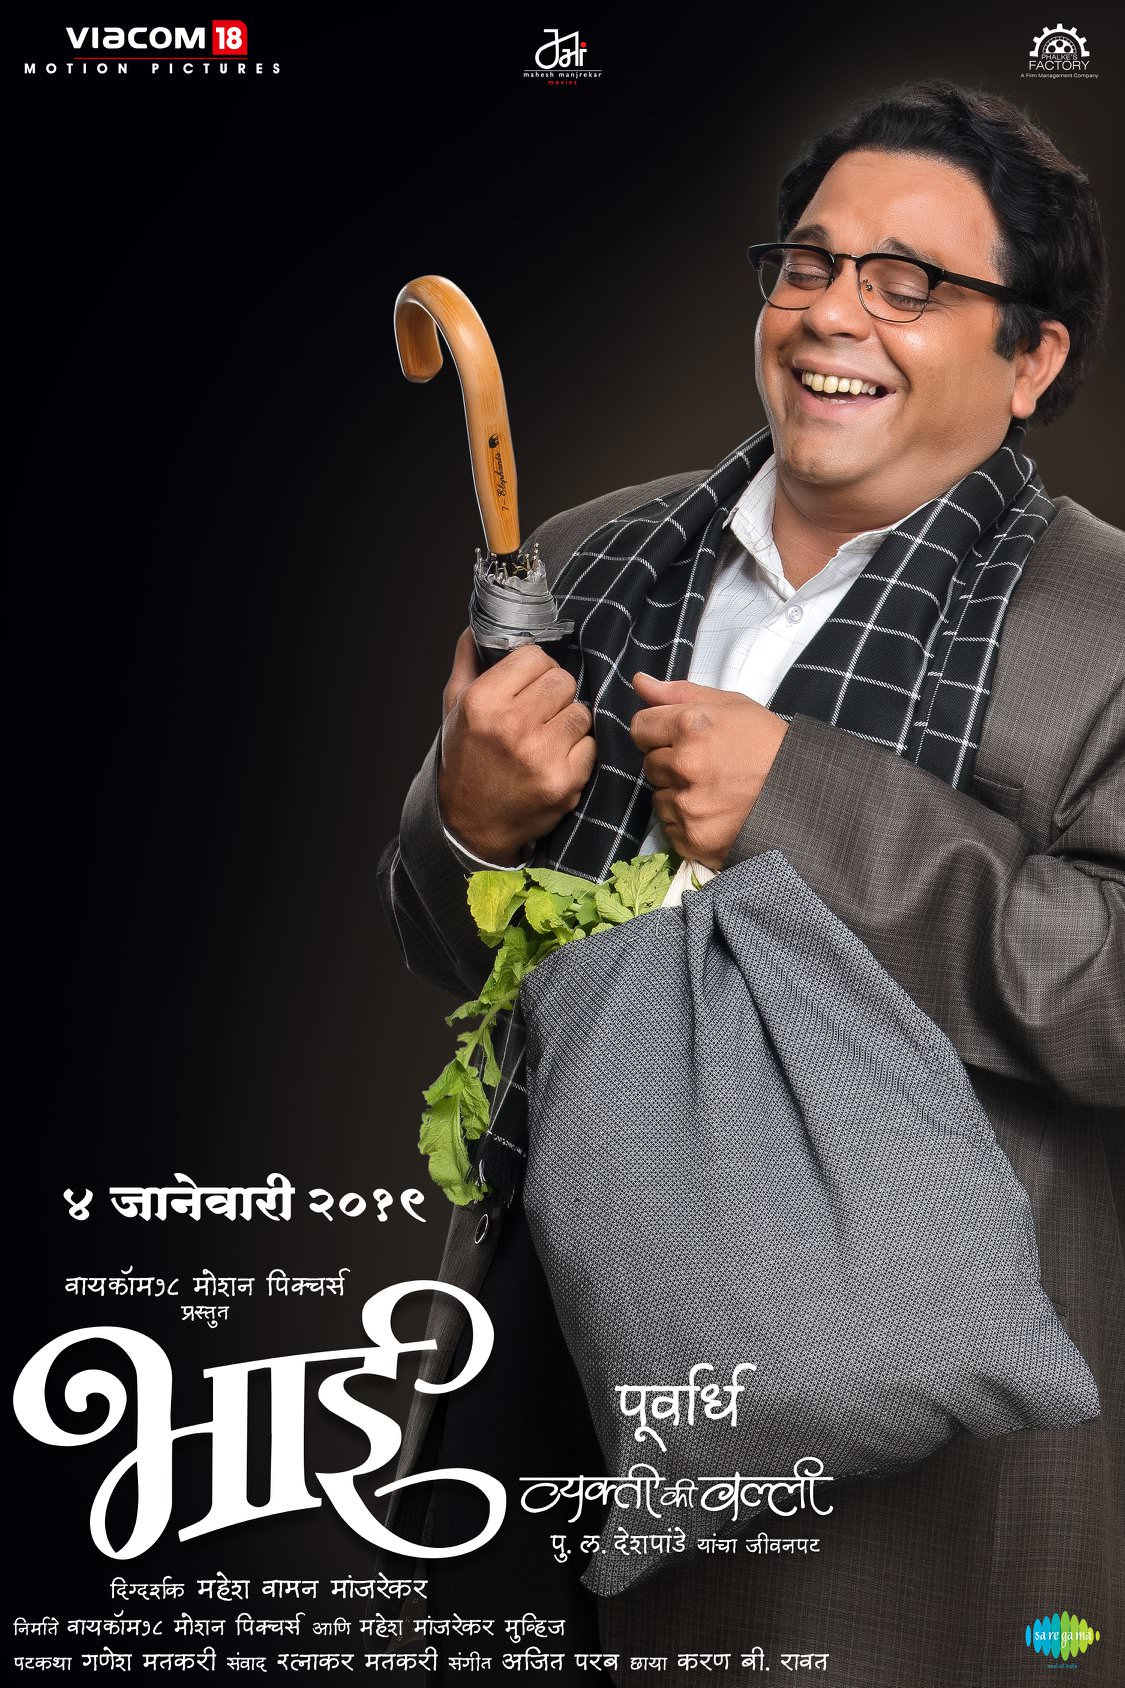 Bhai Marathi Movie Poster